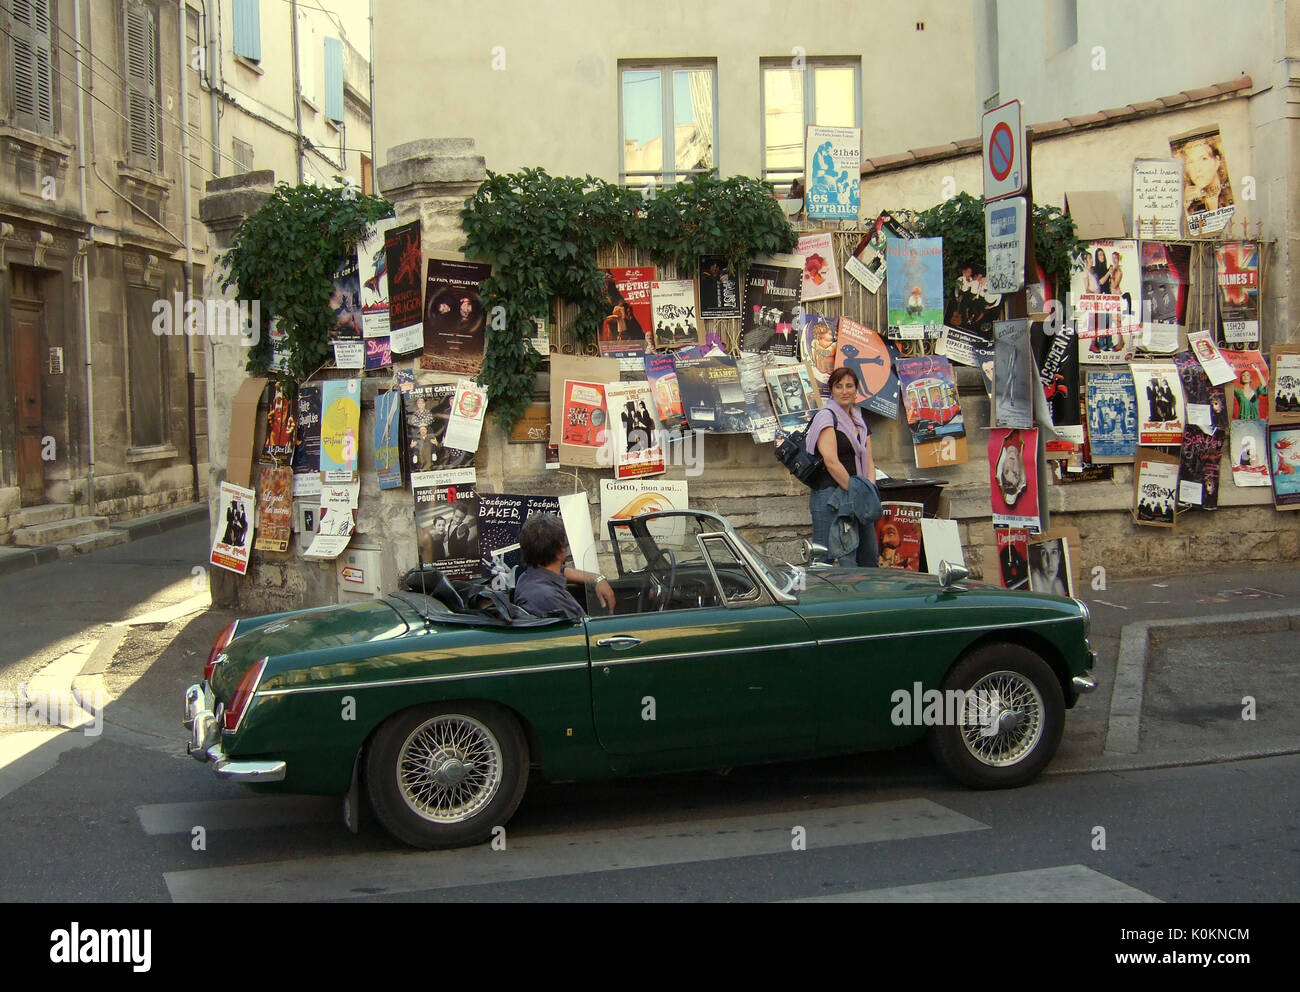 AVIGNON FRANCE - FESTIVAL D'AVIGNON - MG DRIVER LOOKING AT SHOW POSTERS ON A WALL © Frédéric BEAUMONT - Stock Image